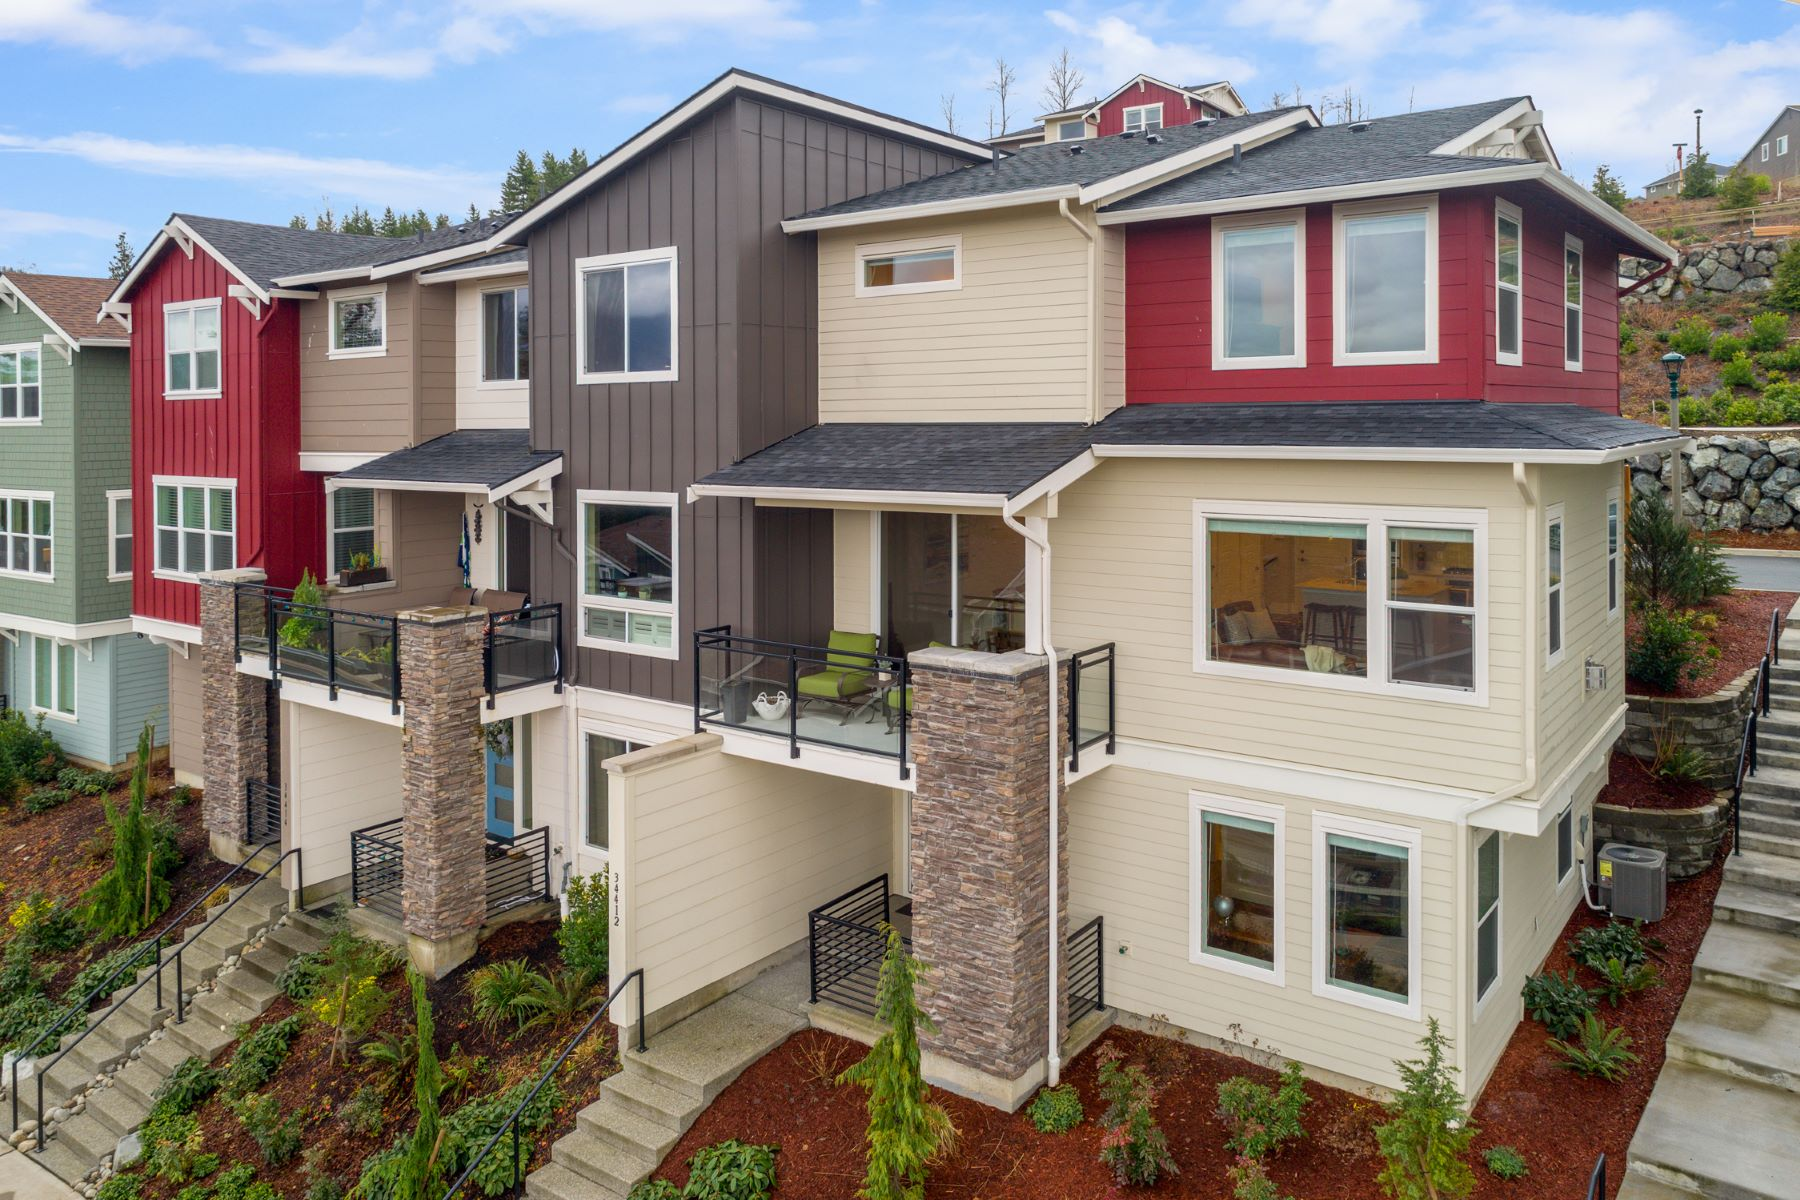 townhouses for Sale at Highland Vistas on Snoqualmie Ridge 34412 SE Groshell St Snoqualmie, Washington 98065 United States